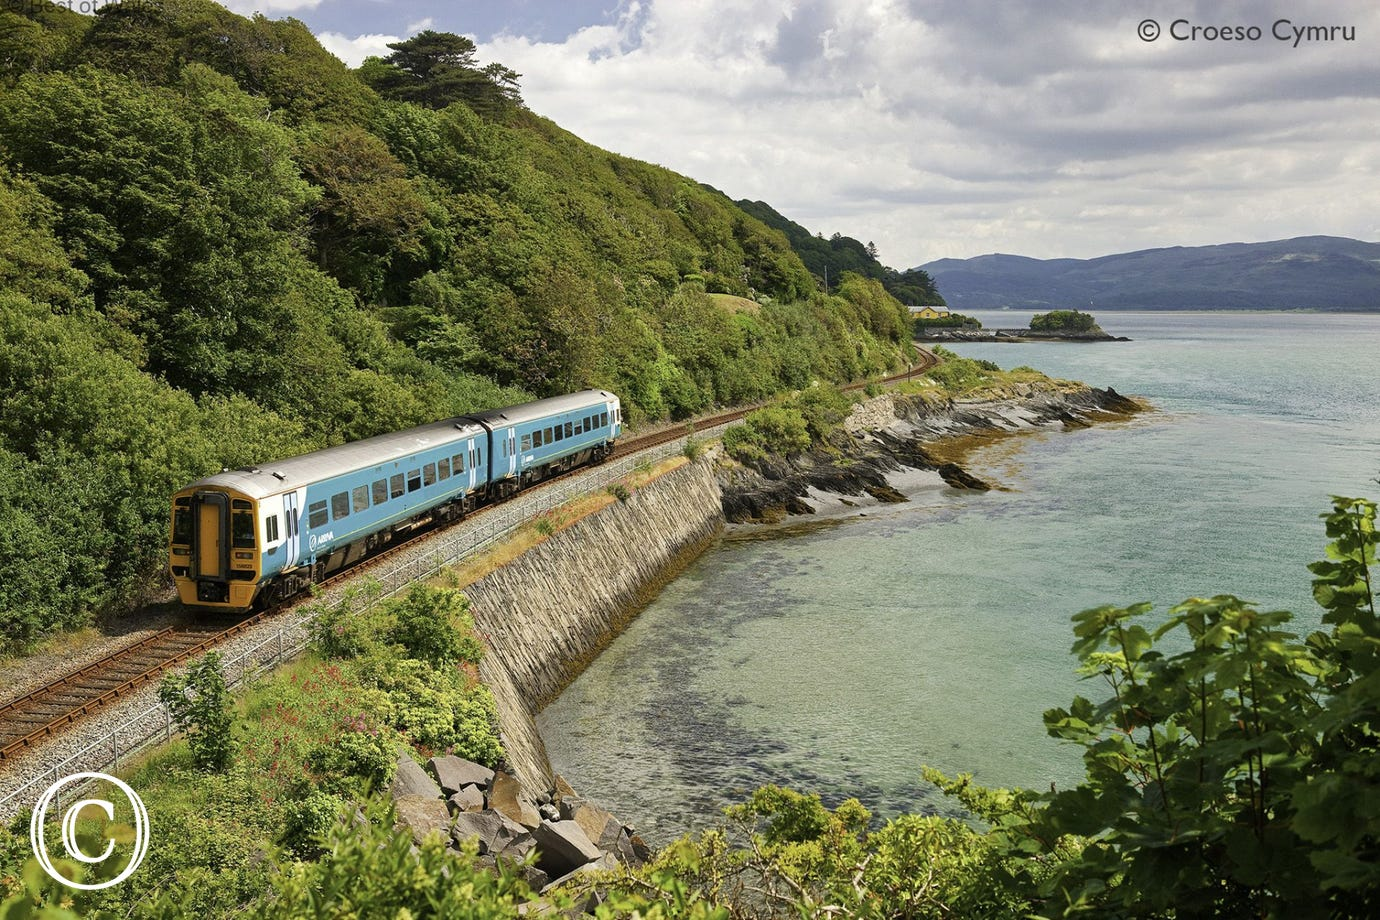 The Cambrian Line (from Machynlleth) offers one of the most scenic train routes in the world